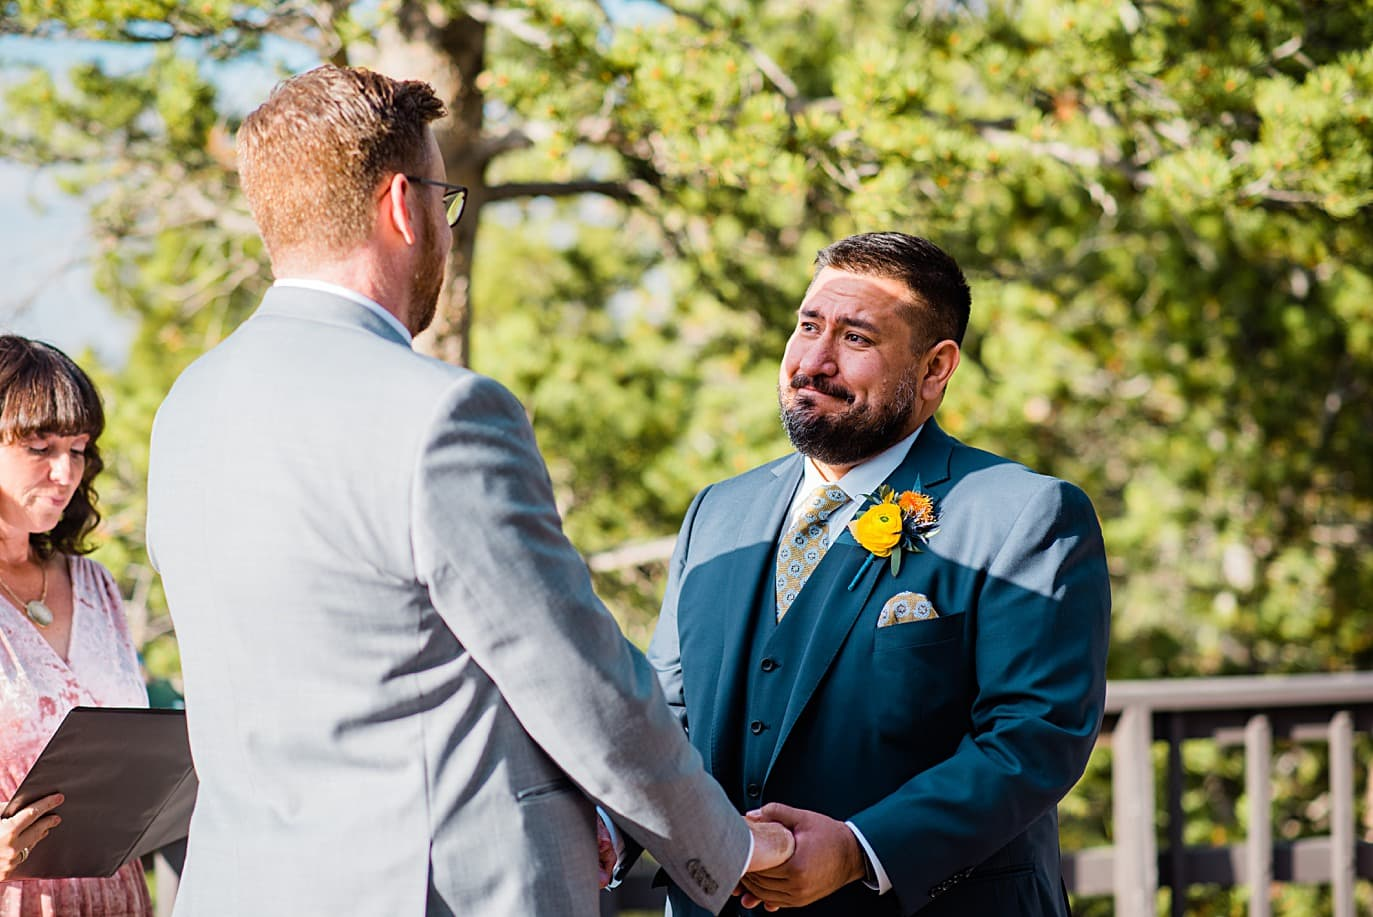 grooms say vows at Panorama point during LGBTQ wedding by Colorado LGBT photographer Jennie Crate